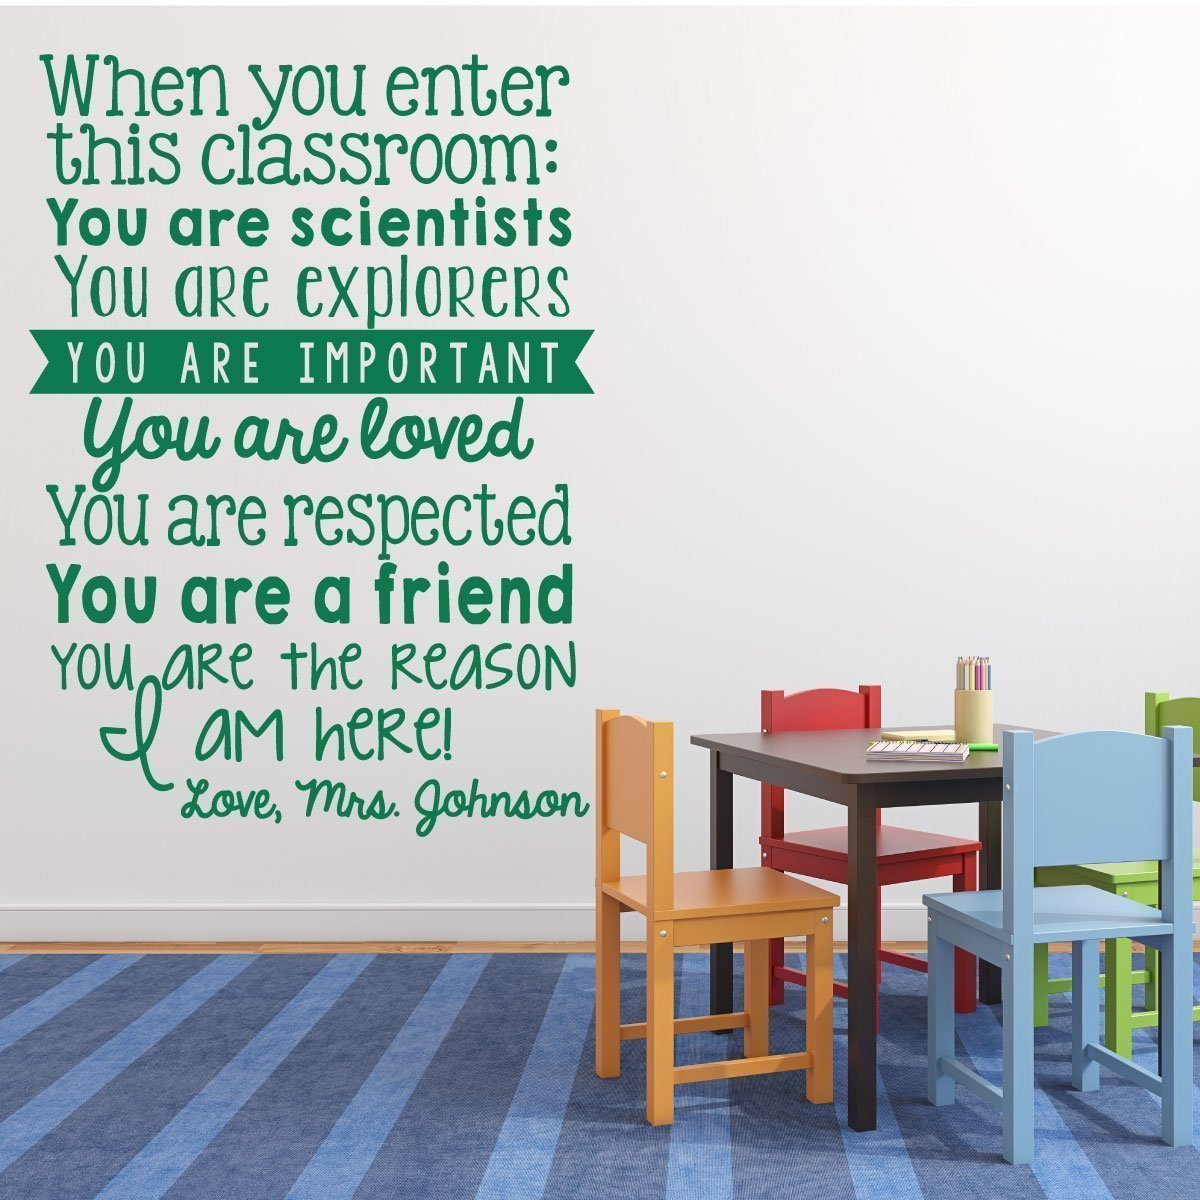 Classroom Decorations for Teachers - Personalized Vinyl Wall Lettering, Inspirational Quote Decal